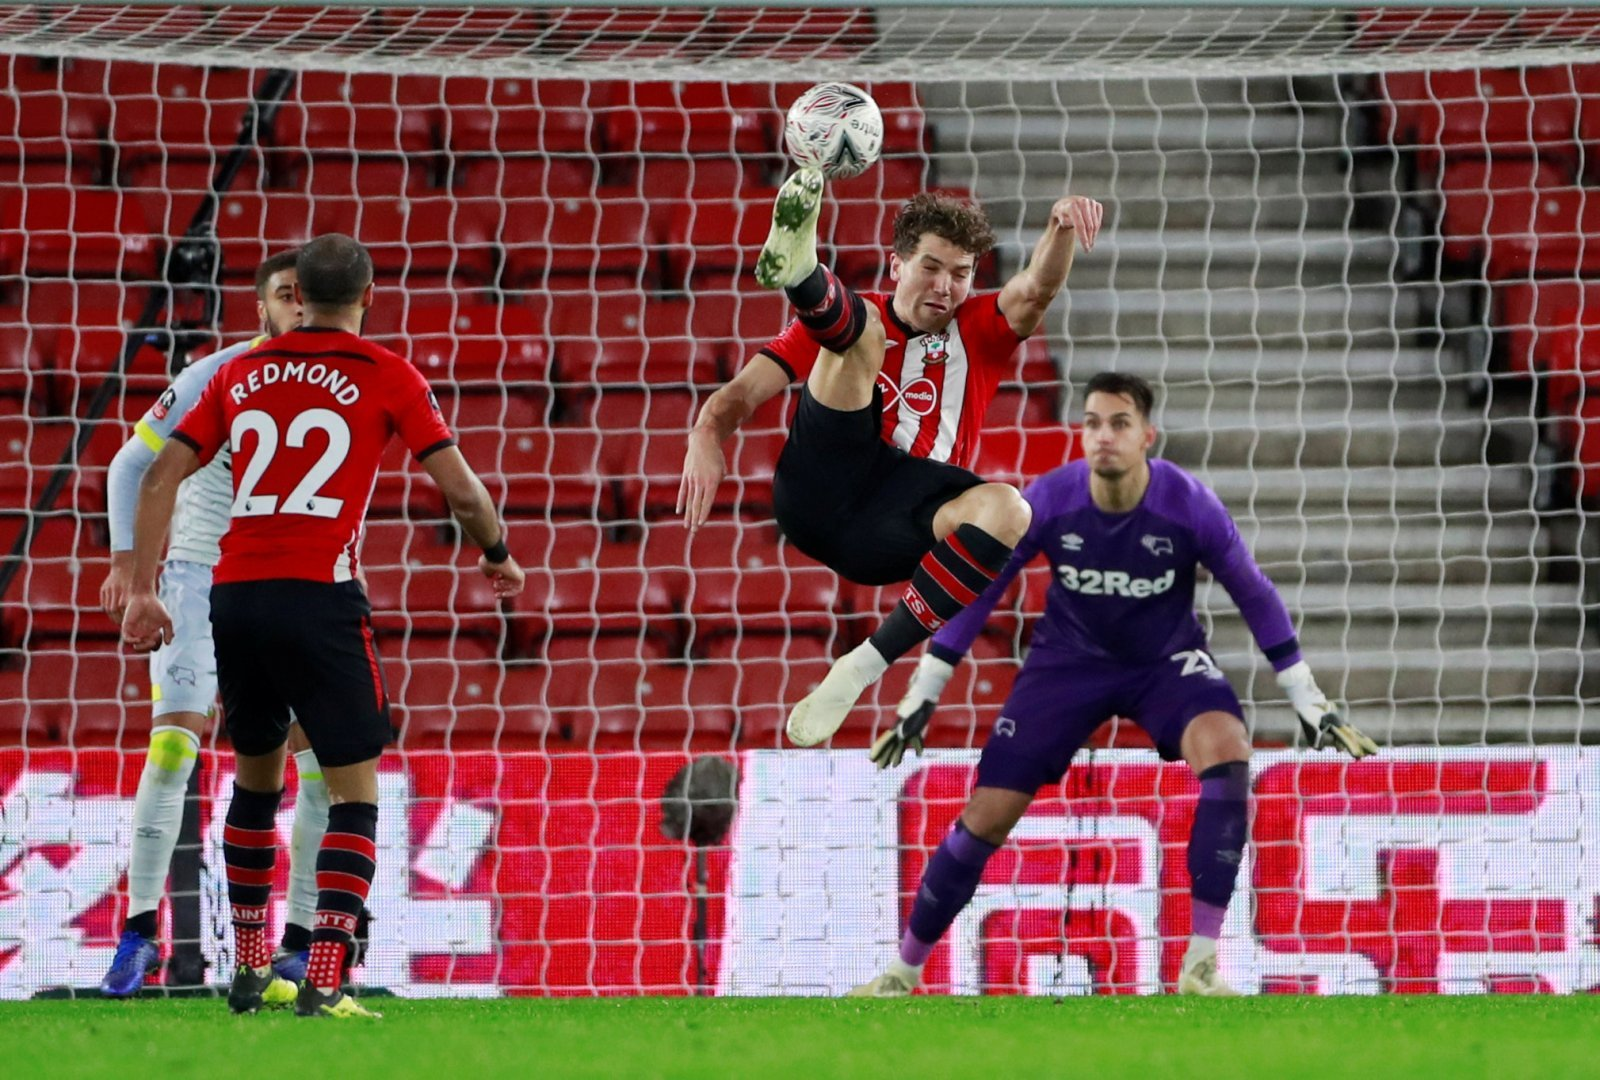 Southampton: Why it is time for Sam Gallagher to leave for good